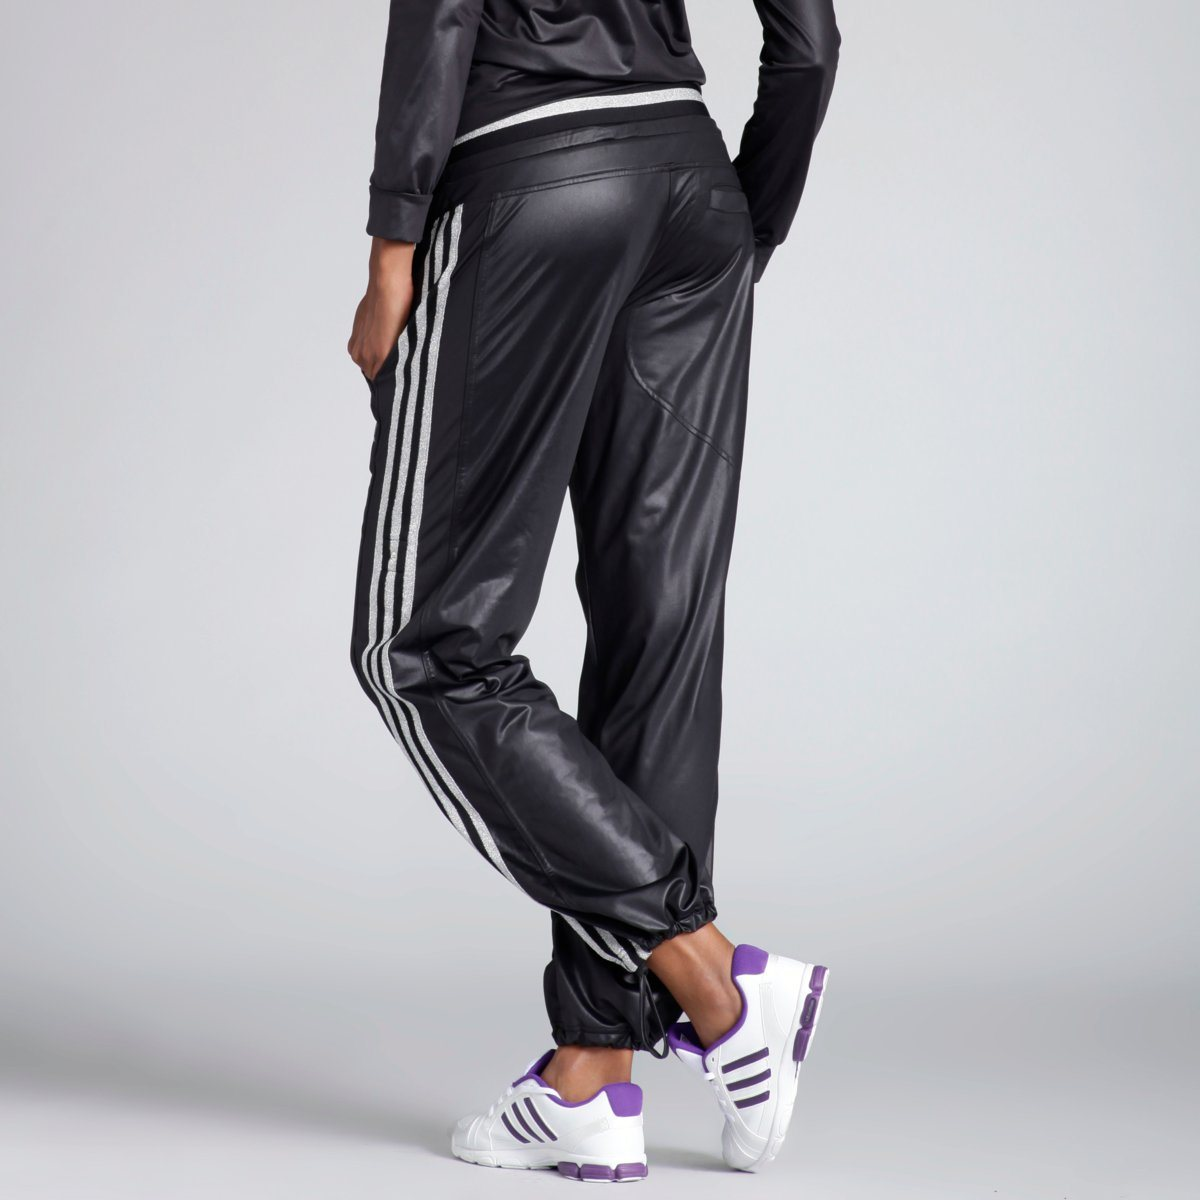 Black Adidas Woven Tracksuit Lower Back View